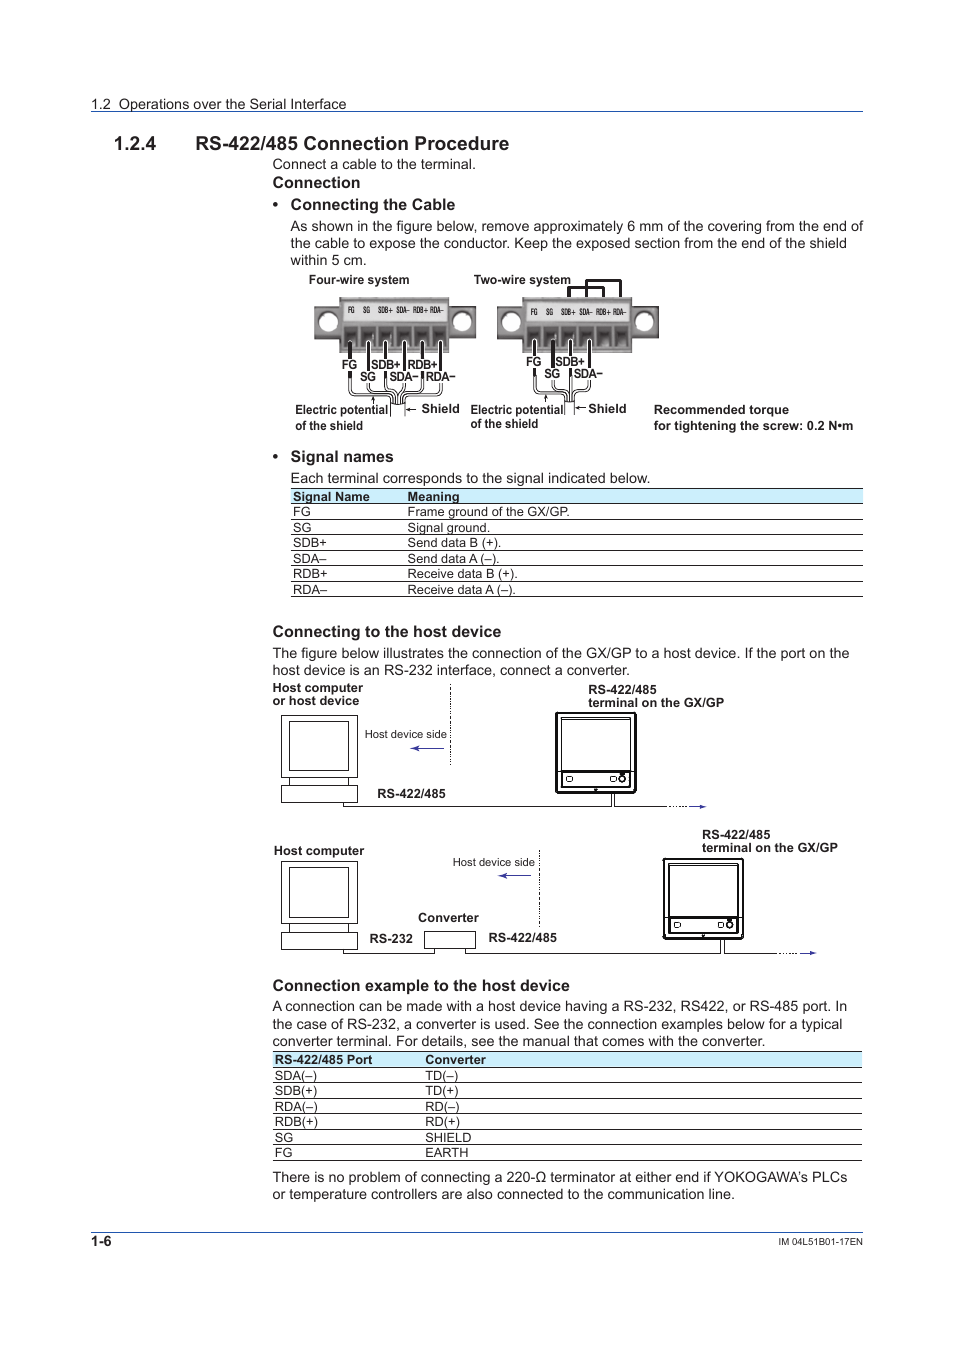 4 Rs 422 485 Connection Procedure 232 To Wiring Diagram Serial Connector 6 Connecting The Cable Yokogawa Touch Screen Gp20 User Manual Page 12